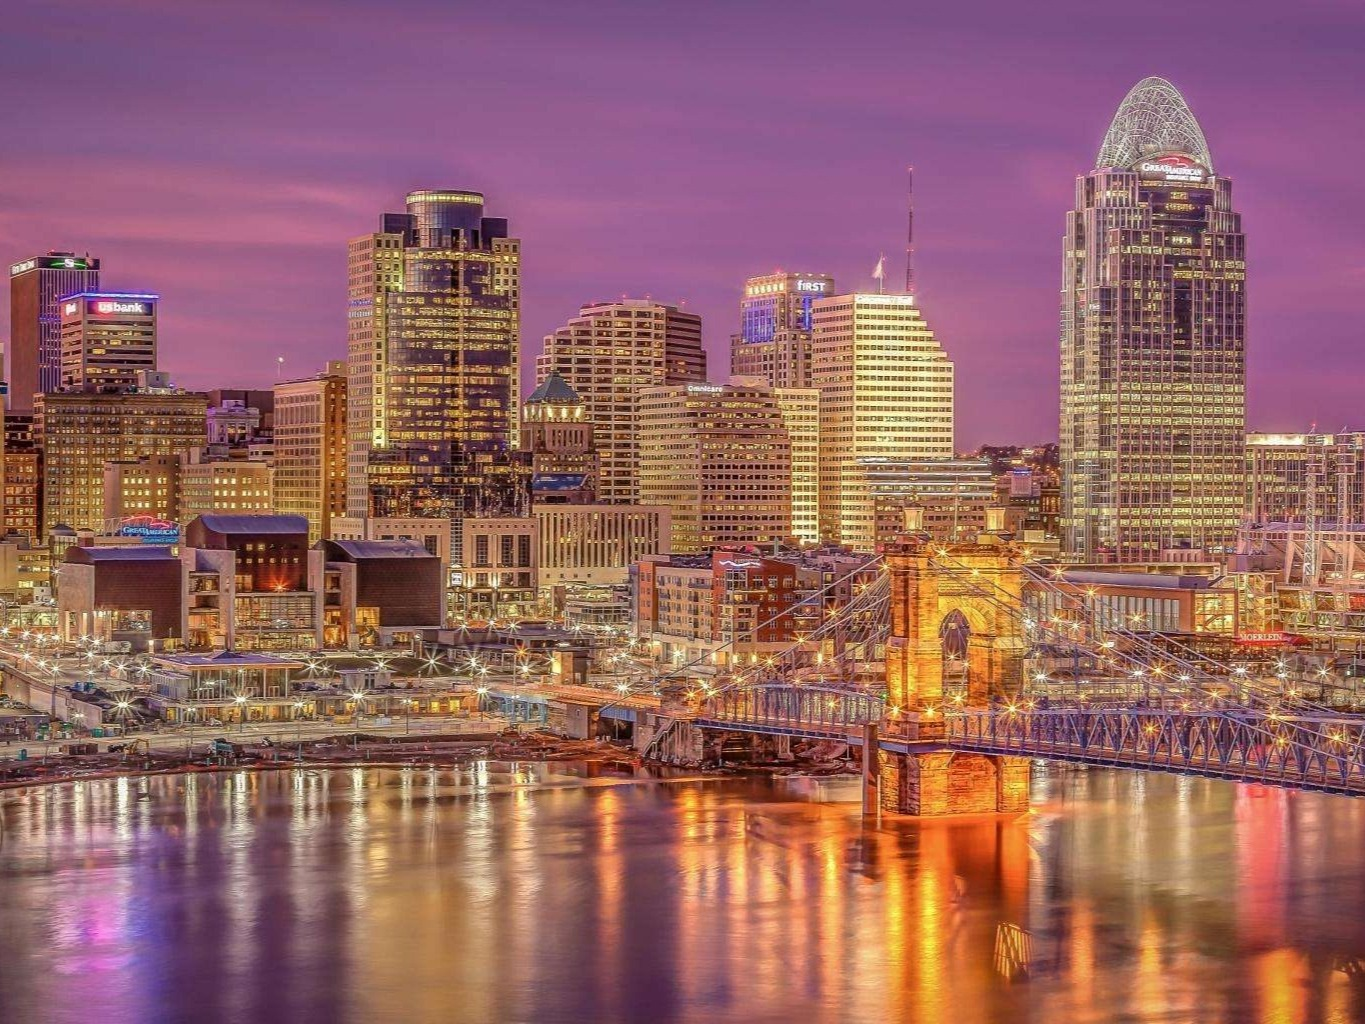 Cincinnati (/ËŒsɪnsɪˈnæti/ SIN-sih-NAT-ee or sin-sih-NAT-ee) is a city in the U.S. state of Ohio and is the government seat of Hamilton County.[9] Settled in 1788, the city is located at the northern side of the confluence of the Licking and Ohio rivers. The city drives the Cincinnati–Middletown–Wilmington combined statistical area, which had a population of 2,172,191 in the 2010 census.[10] With a population of 301,301, Cincinnati is the third-largest city in Ohio and 65th in the United States. It is the fastest growing economic power in the Midwestern United States based on percentages[11] and the 28th-biggest metropolitan statistical area in the U.S. Cincinnati is also within a single day's drive of two-thirds of the United States populace.[12]